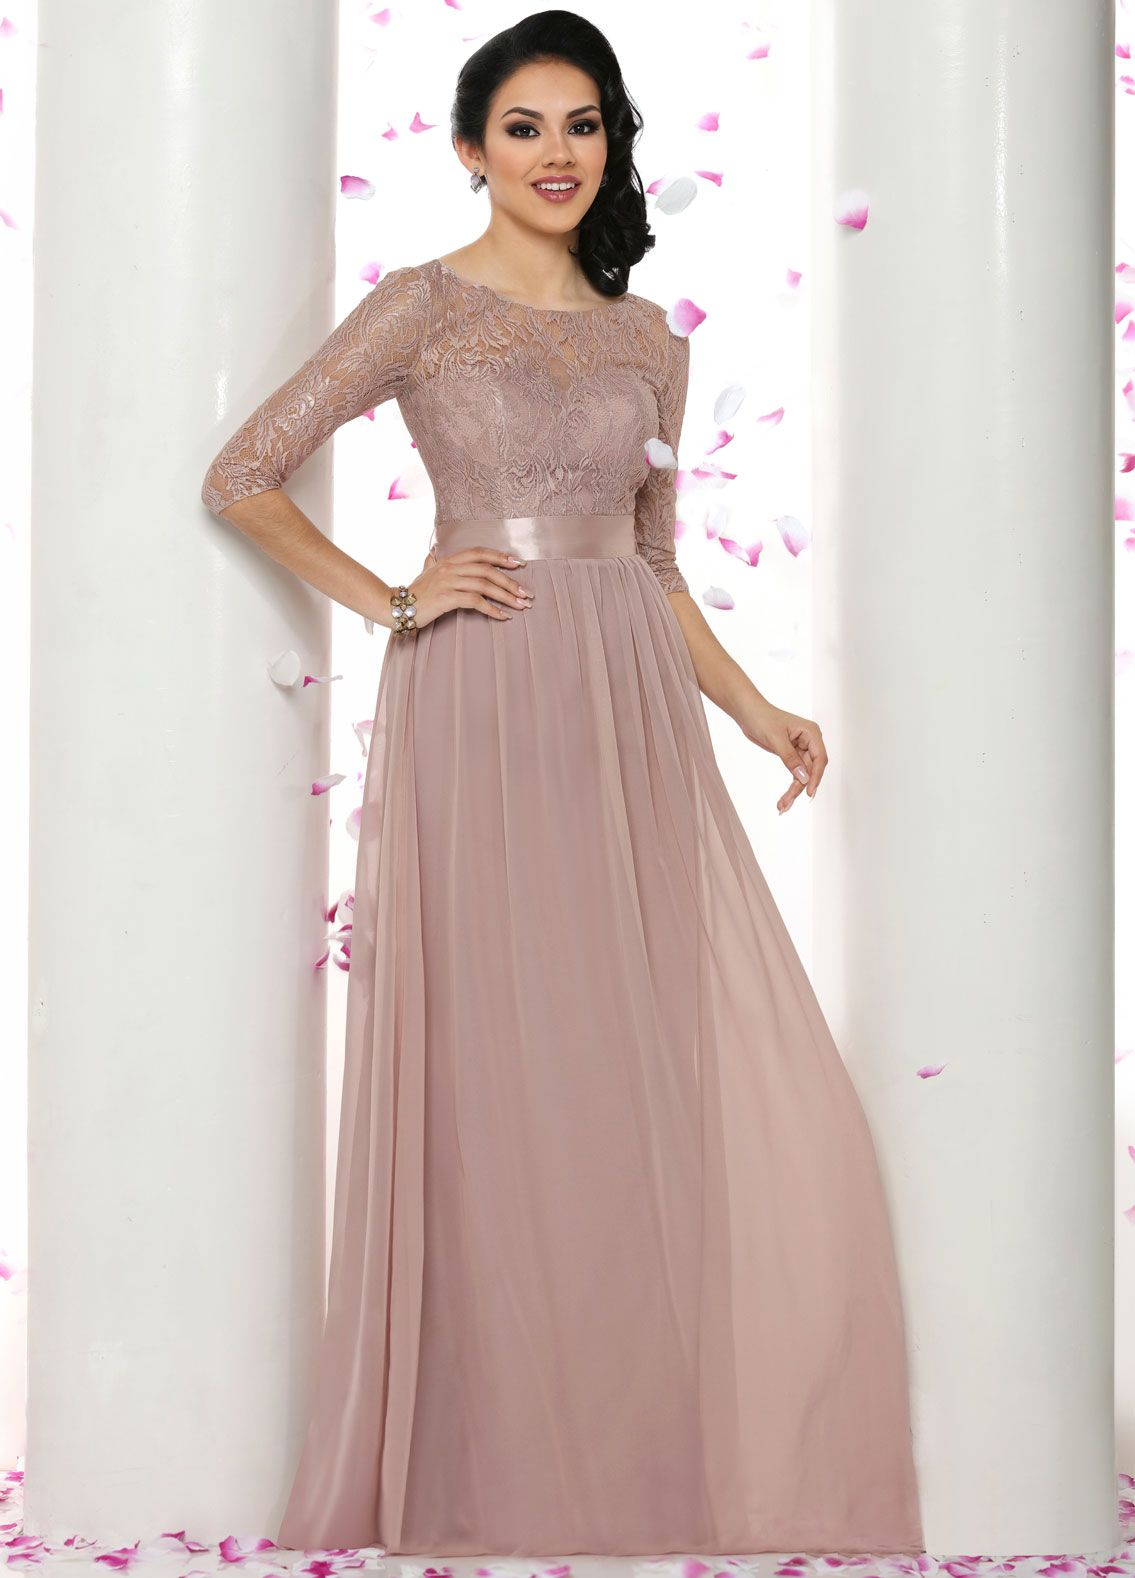 Finding A Stunning Bridesmaid Look For Religious Or Conservative Wedding Can Long Dresses